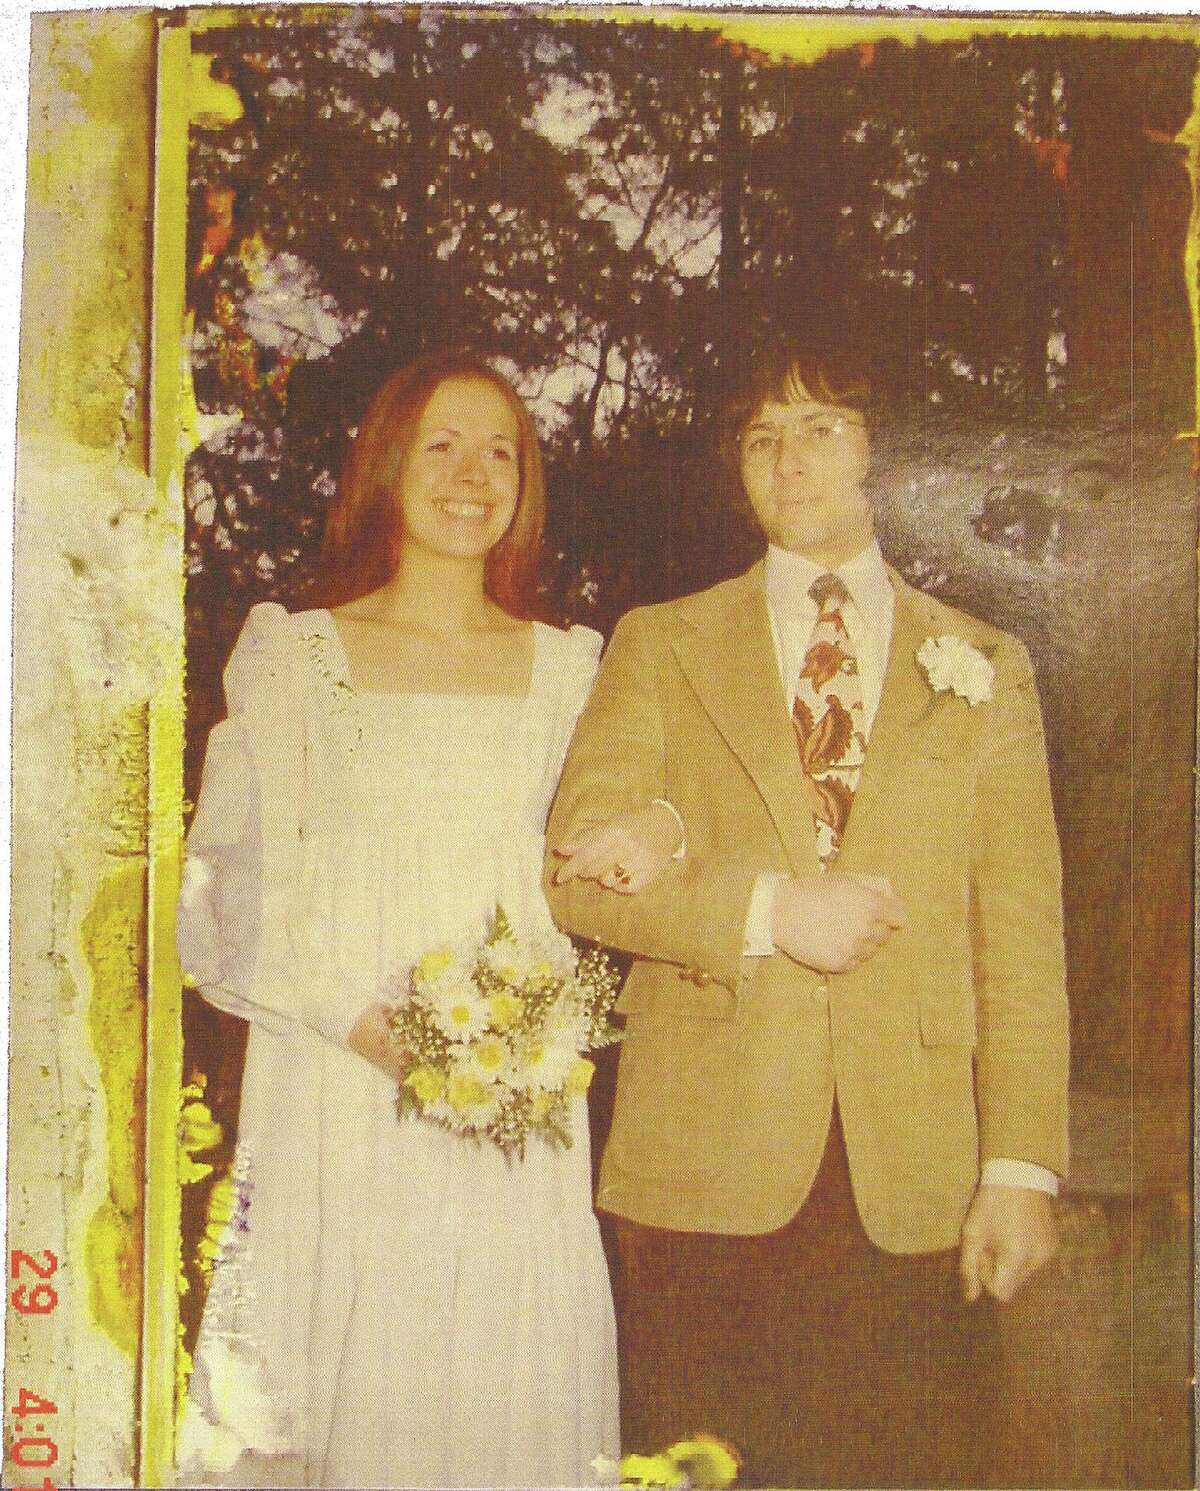 Robert and Kathie Durst on their wedding day. Kathie Durst disappeared on Jan. 31, 1982 when she was 29 years old.